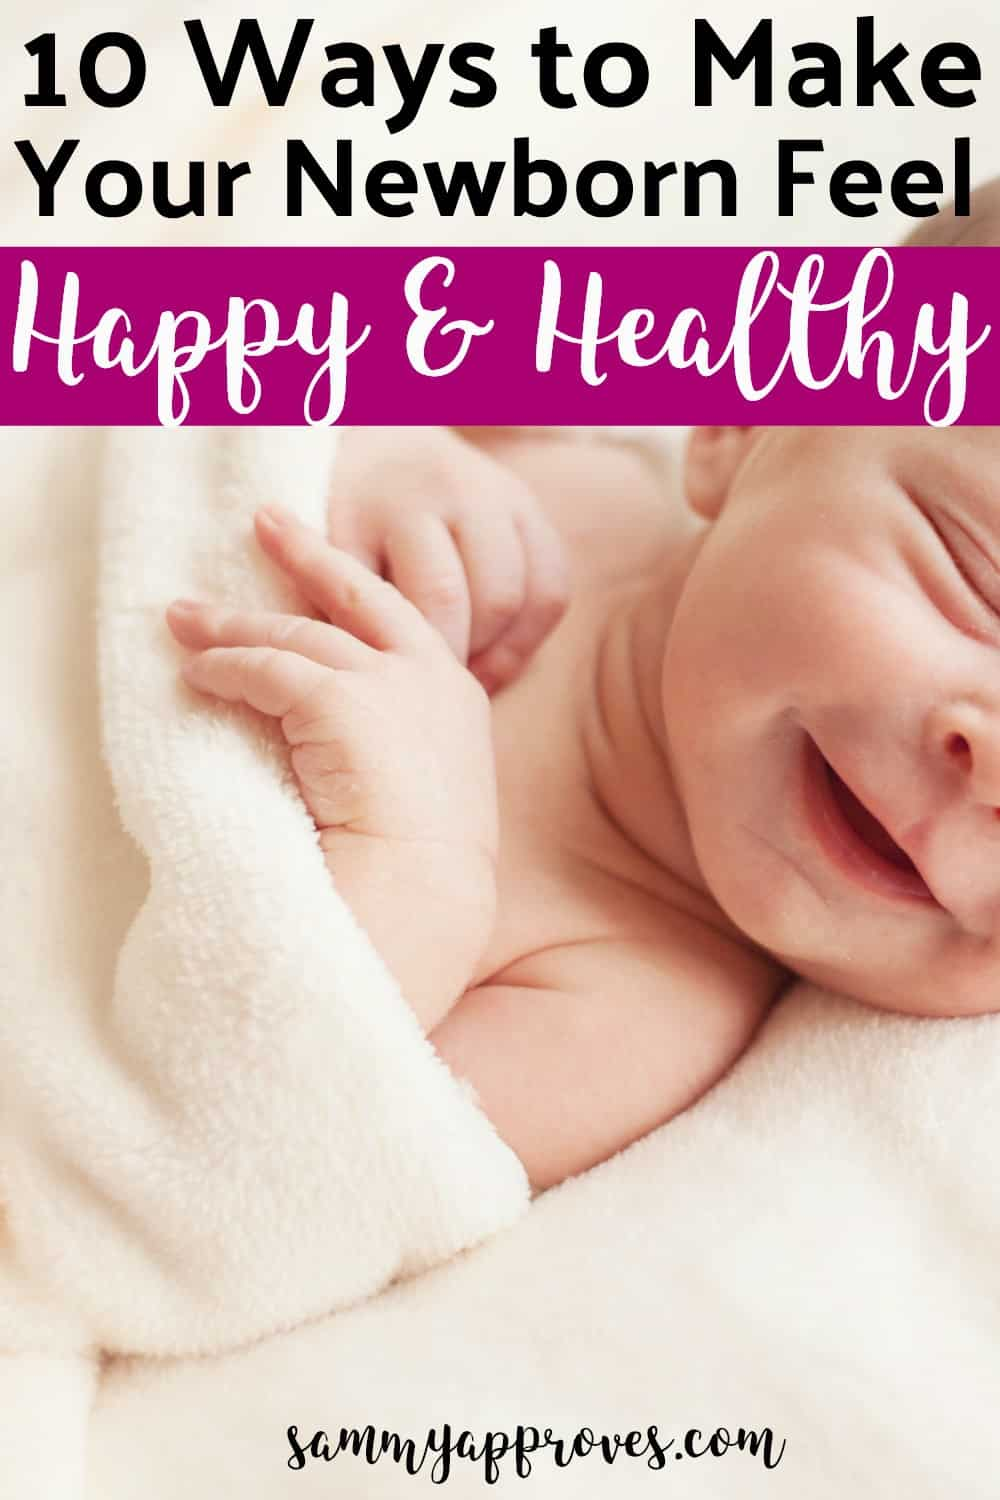 10 Ways to Make Your Newborn Feel Happy and Healthy